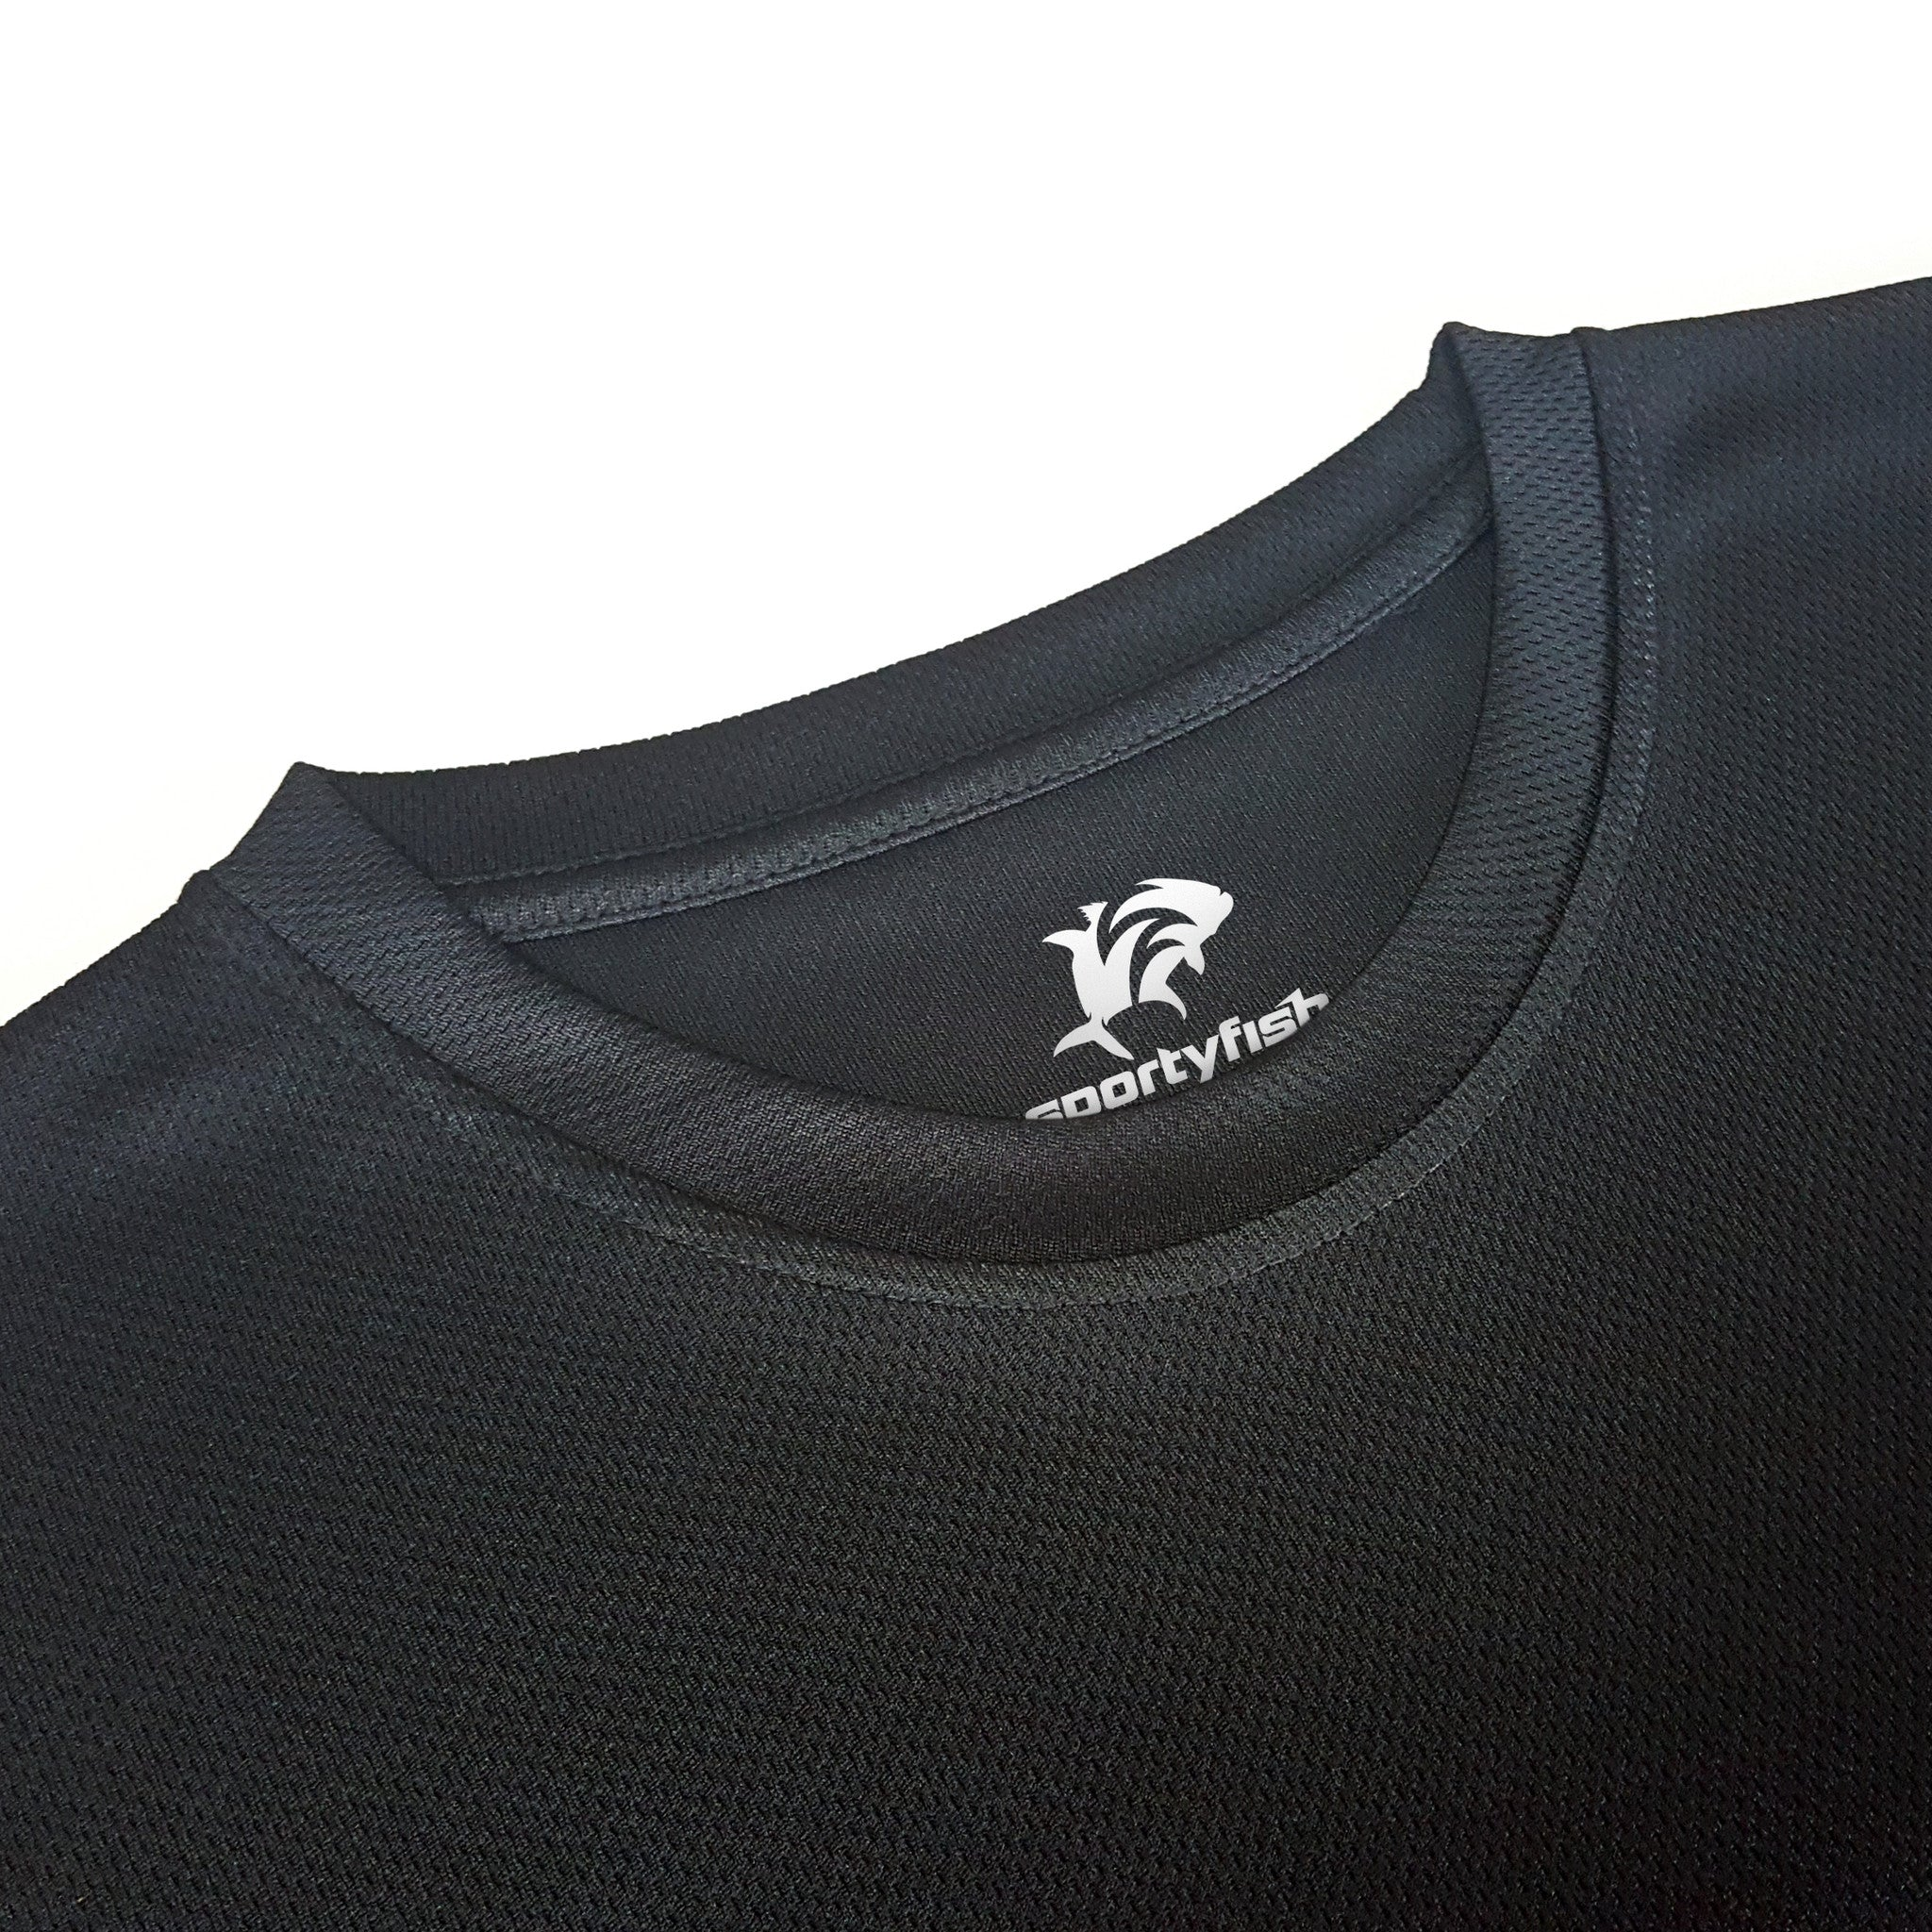 SportyFish Black Series black Long-sleeves t-shirt: Black Marlin close-up view 2